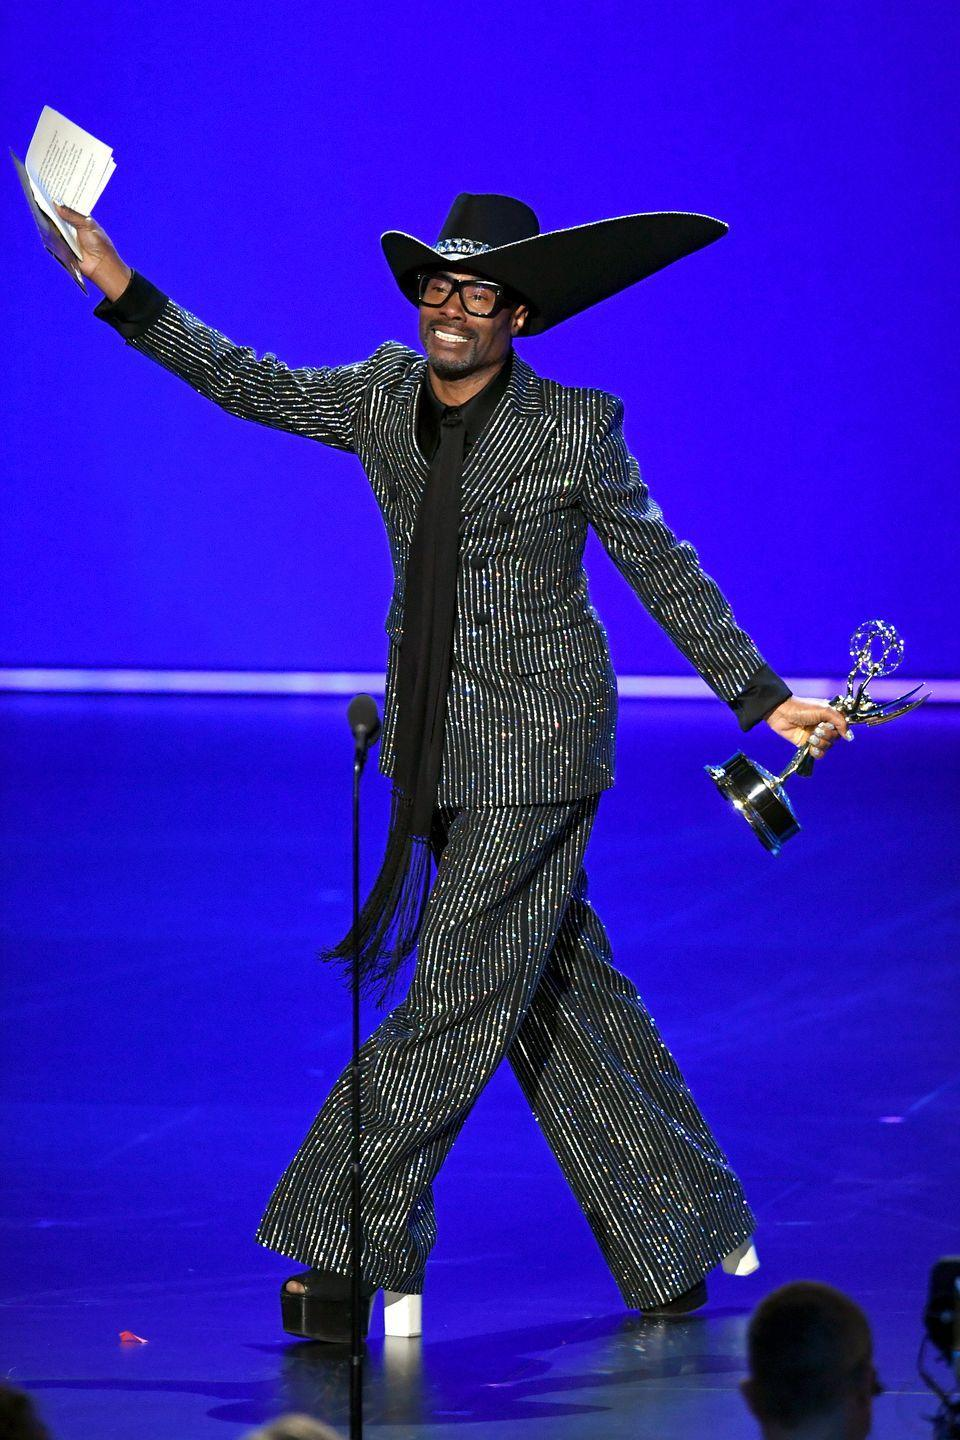 """<p>Collecting his Emmy for Best Lead Actor in a drama series for Pose (and becoming the first, gay, black man to do so), Porter wore a custom Michael Kors pinstripe suit with platform shoes, a Stephen Jones custom hat an extra-long scarf as a tie. </p><p>The actor explained that he wanted a '70s disco throwback moment' with his attire to <a href=""""https://www.hollywoodreporter.com/news/pose-star-billy-porter-what-ill-be-wearing-at-emmys-1240439"""" rel=""""nofollow noopener"""" target=""""_blank"""" data-ylk=""""slk:The Hollywood Reporter"""" class=""""link rapid-noclick-resp"""">The Hollywood Reporter</a>.</p>"""